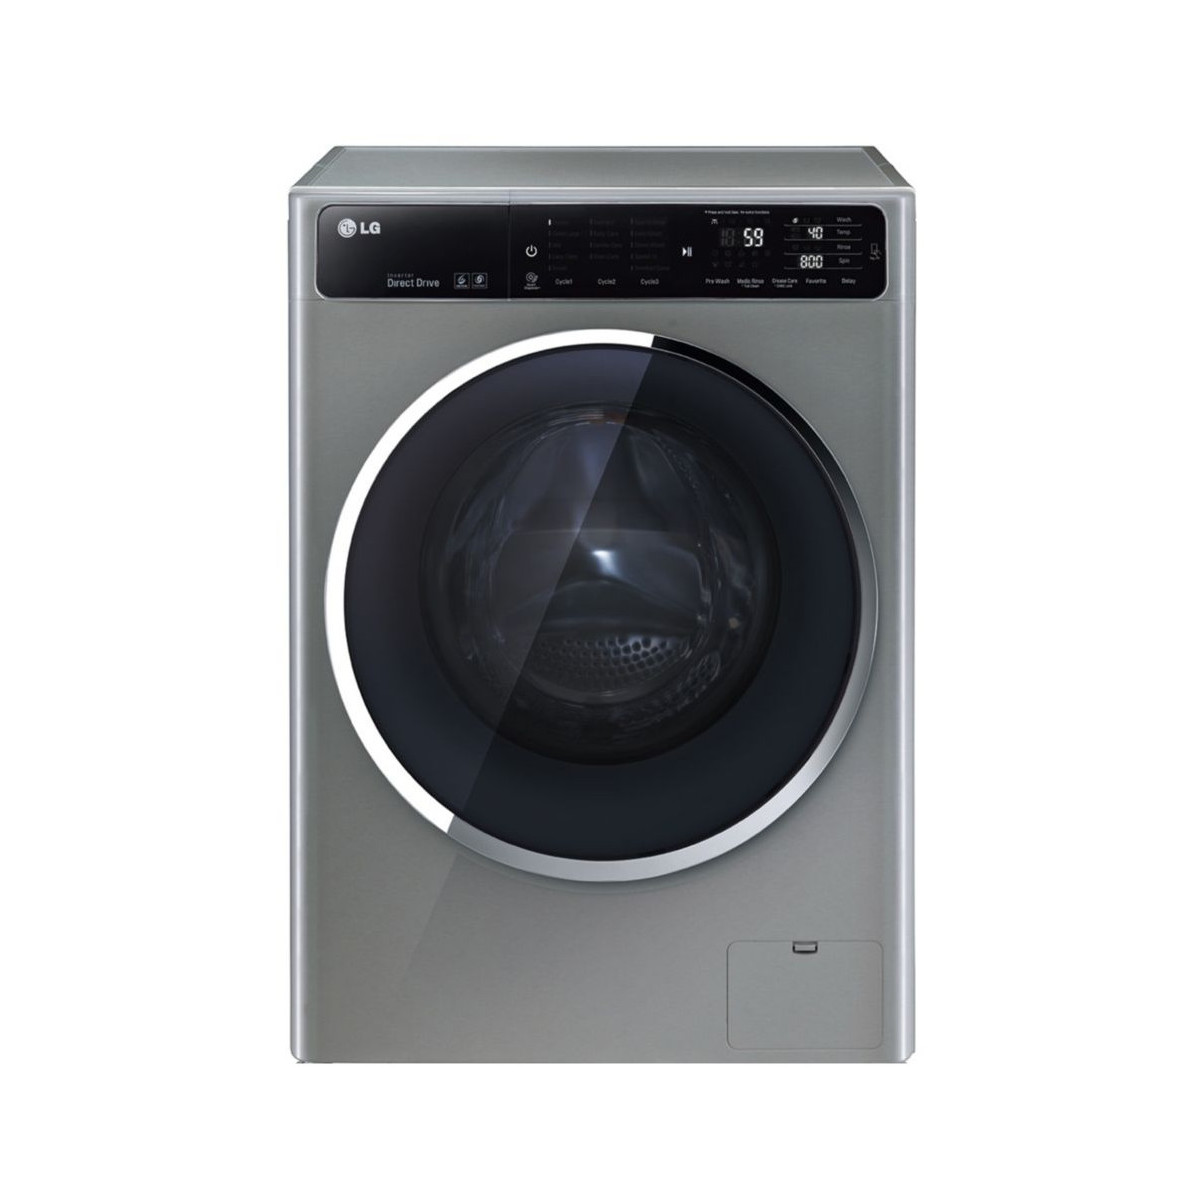 LG F84915IX 6Motion Direct Drive - Vue de face